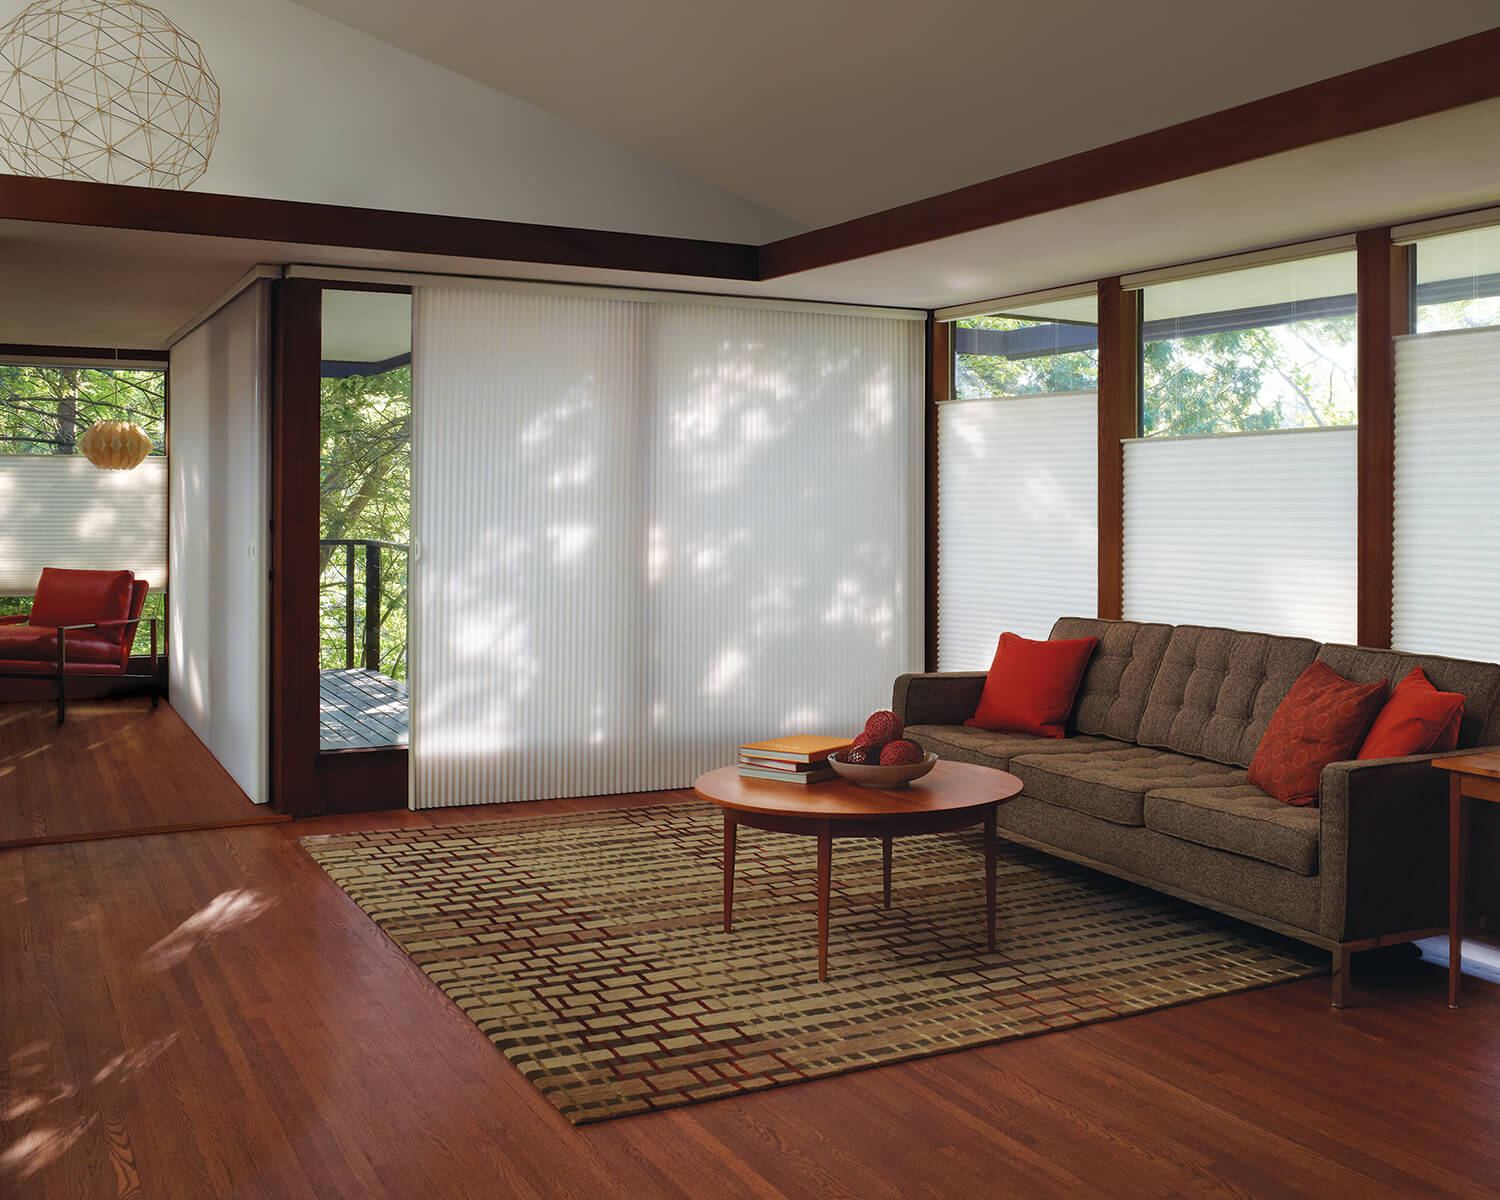 Images of Cellular Shades For Sliding Doors - Woonv.com - Handle idea